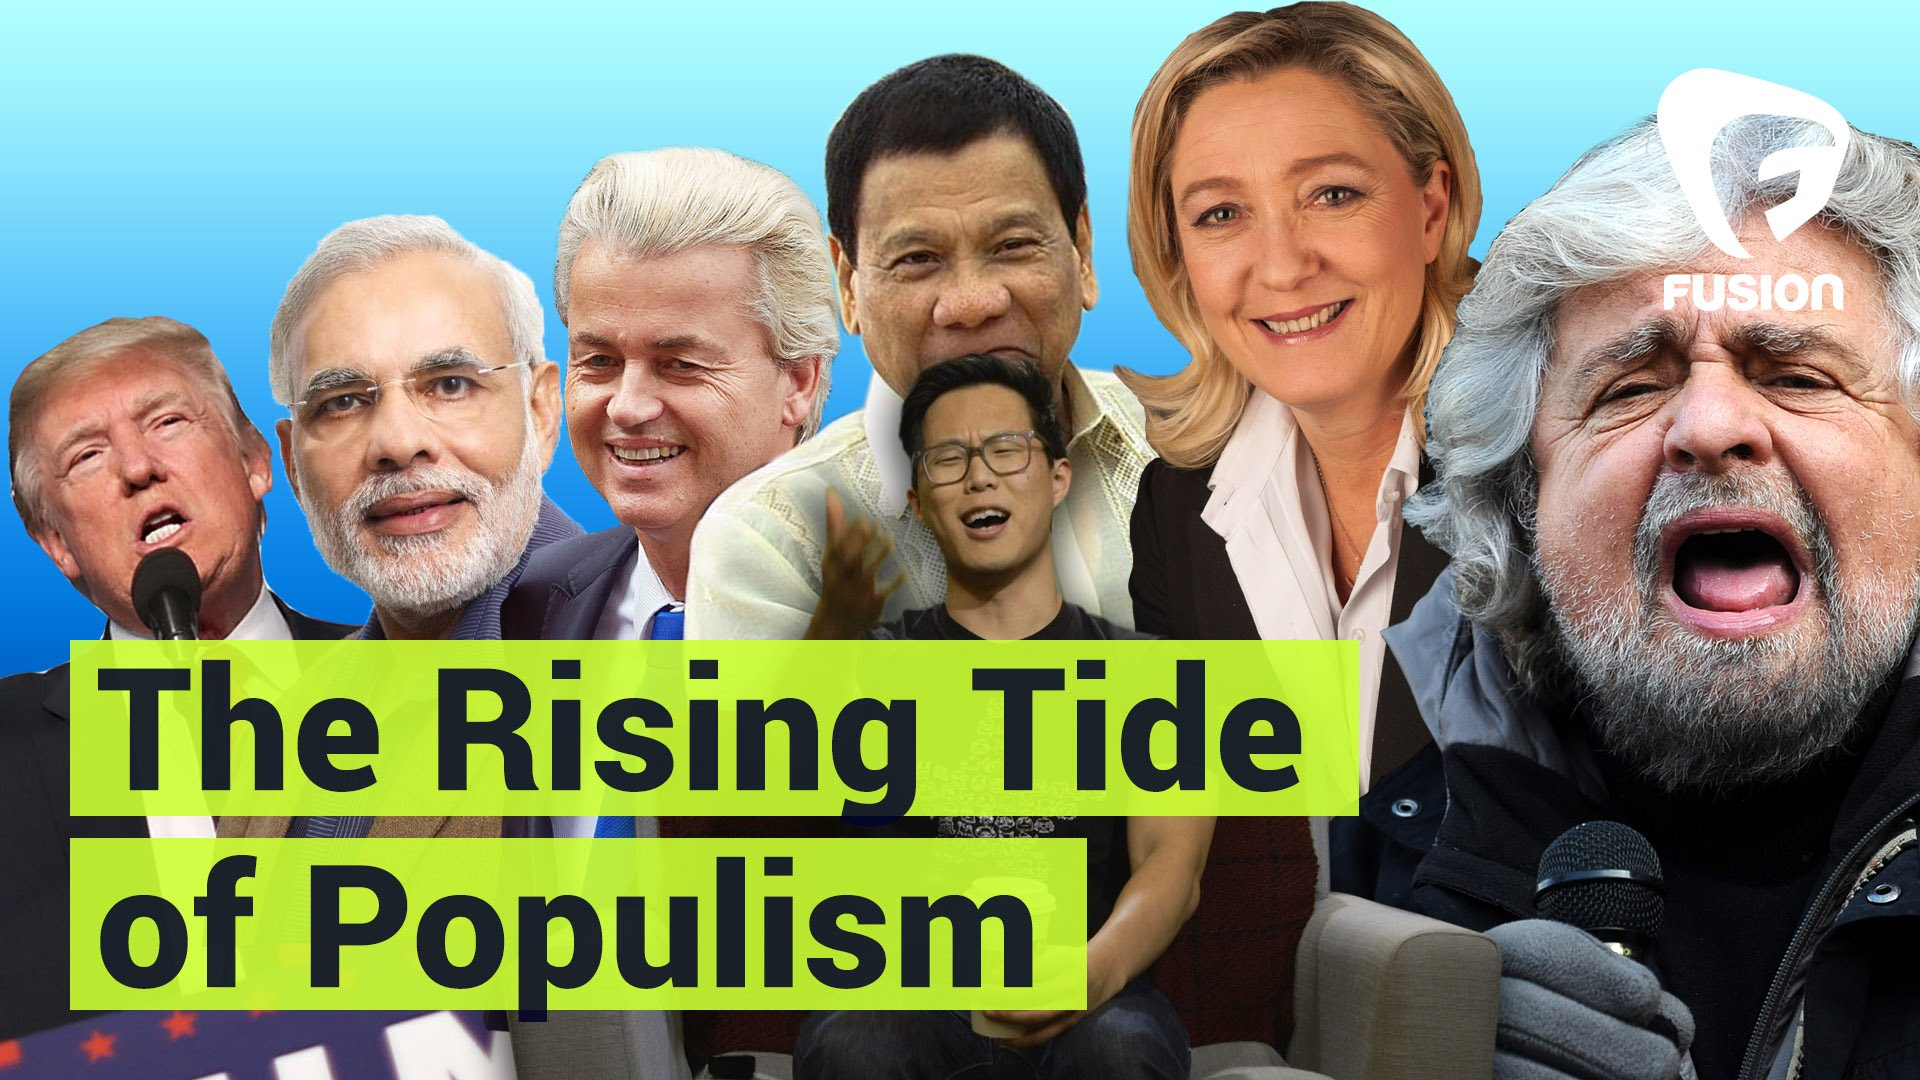 globalism vs nationalism The new politics: globalism vs nationalism 20th february 2018 jonathon davies communism, history, labour, politics, socialism, war 0 the old politics there is a shift in politics this has been apparent for some time now politics used to be run along the lines of left against right this evolved from the french revolution era.